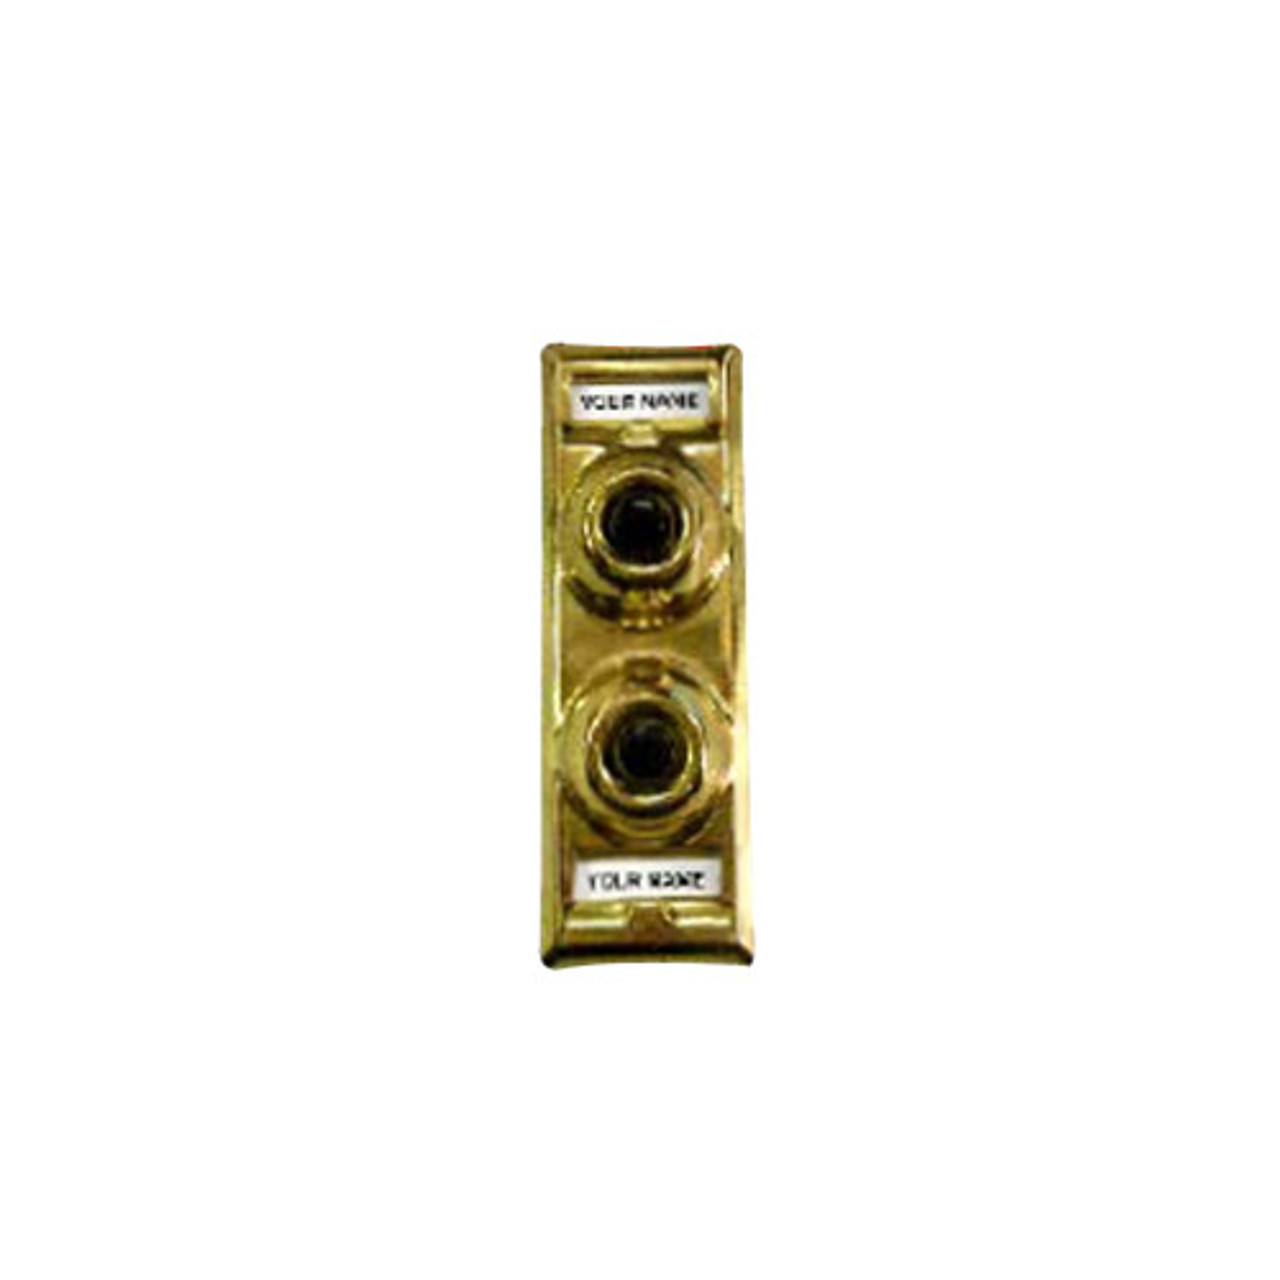 91P Trine Push Button Multi-Family in Polished Solid Brass Finish